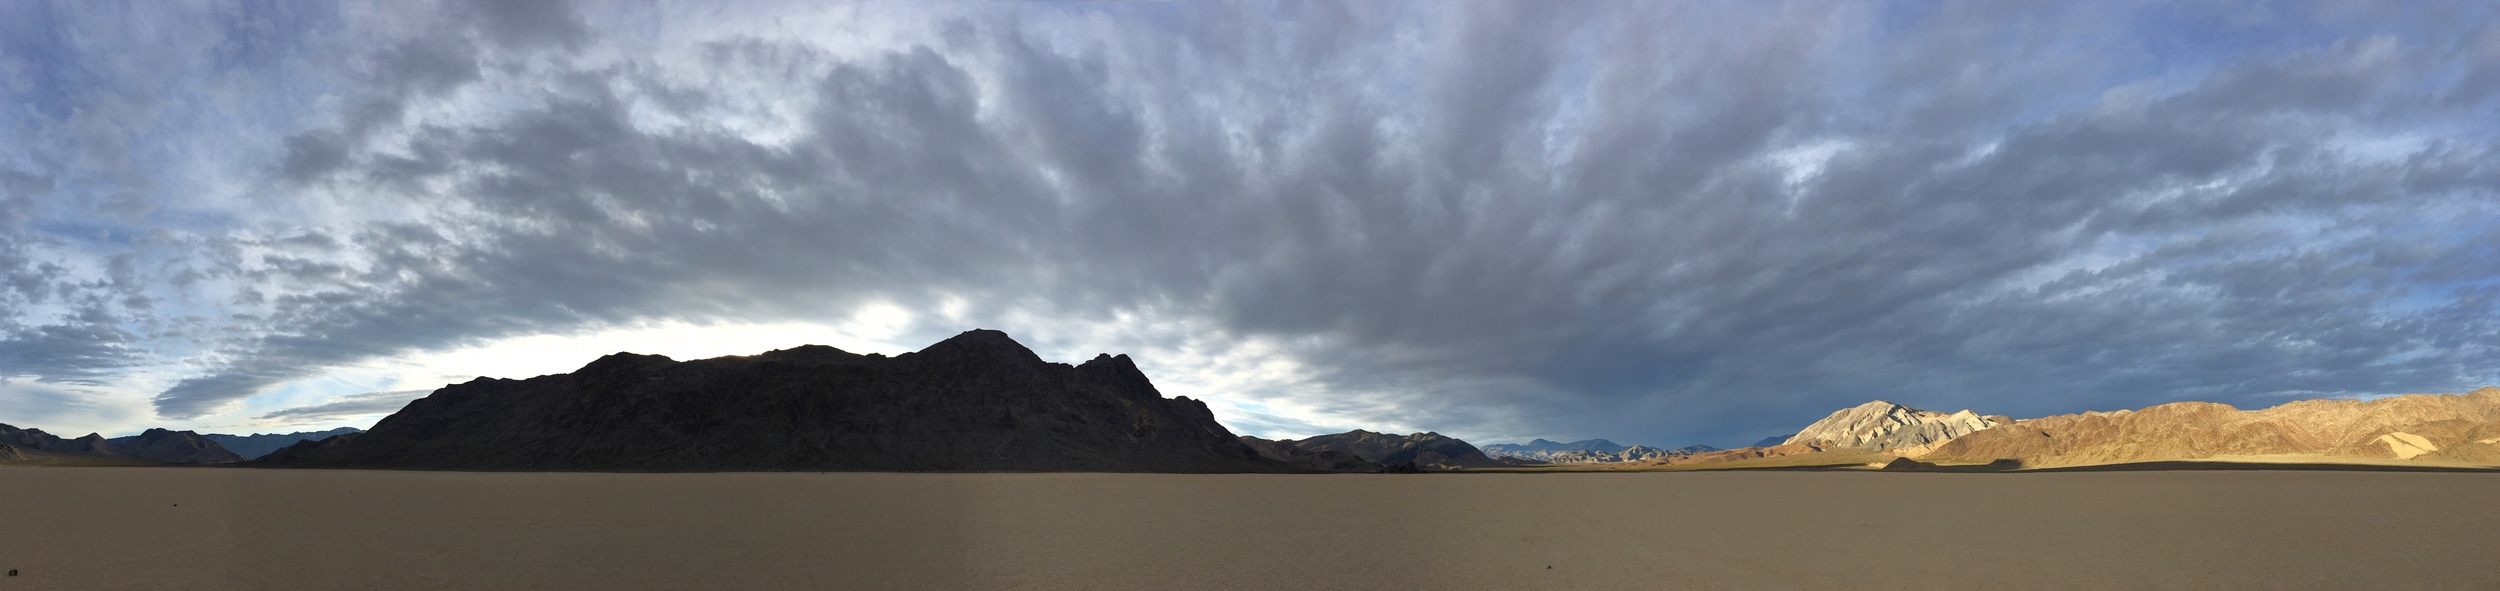 The Racetrack Playa at Death Valley National Park in California & Nevada.